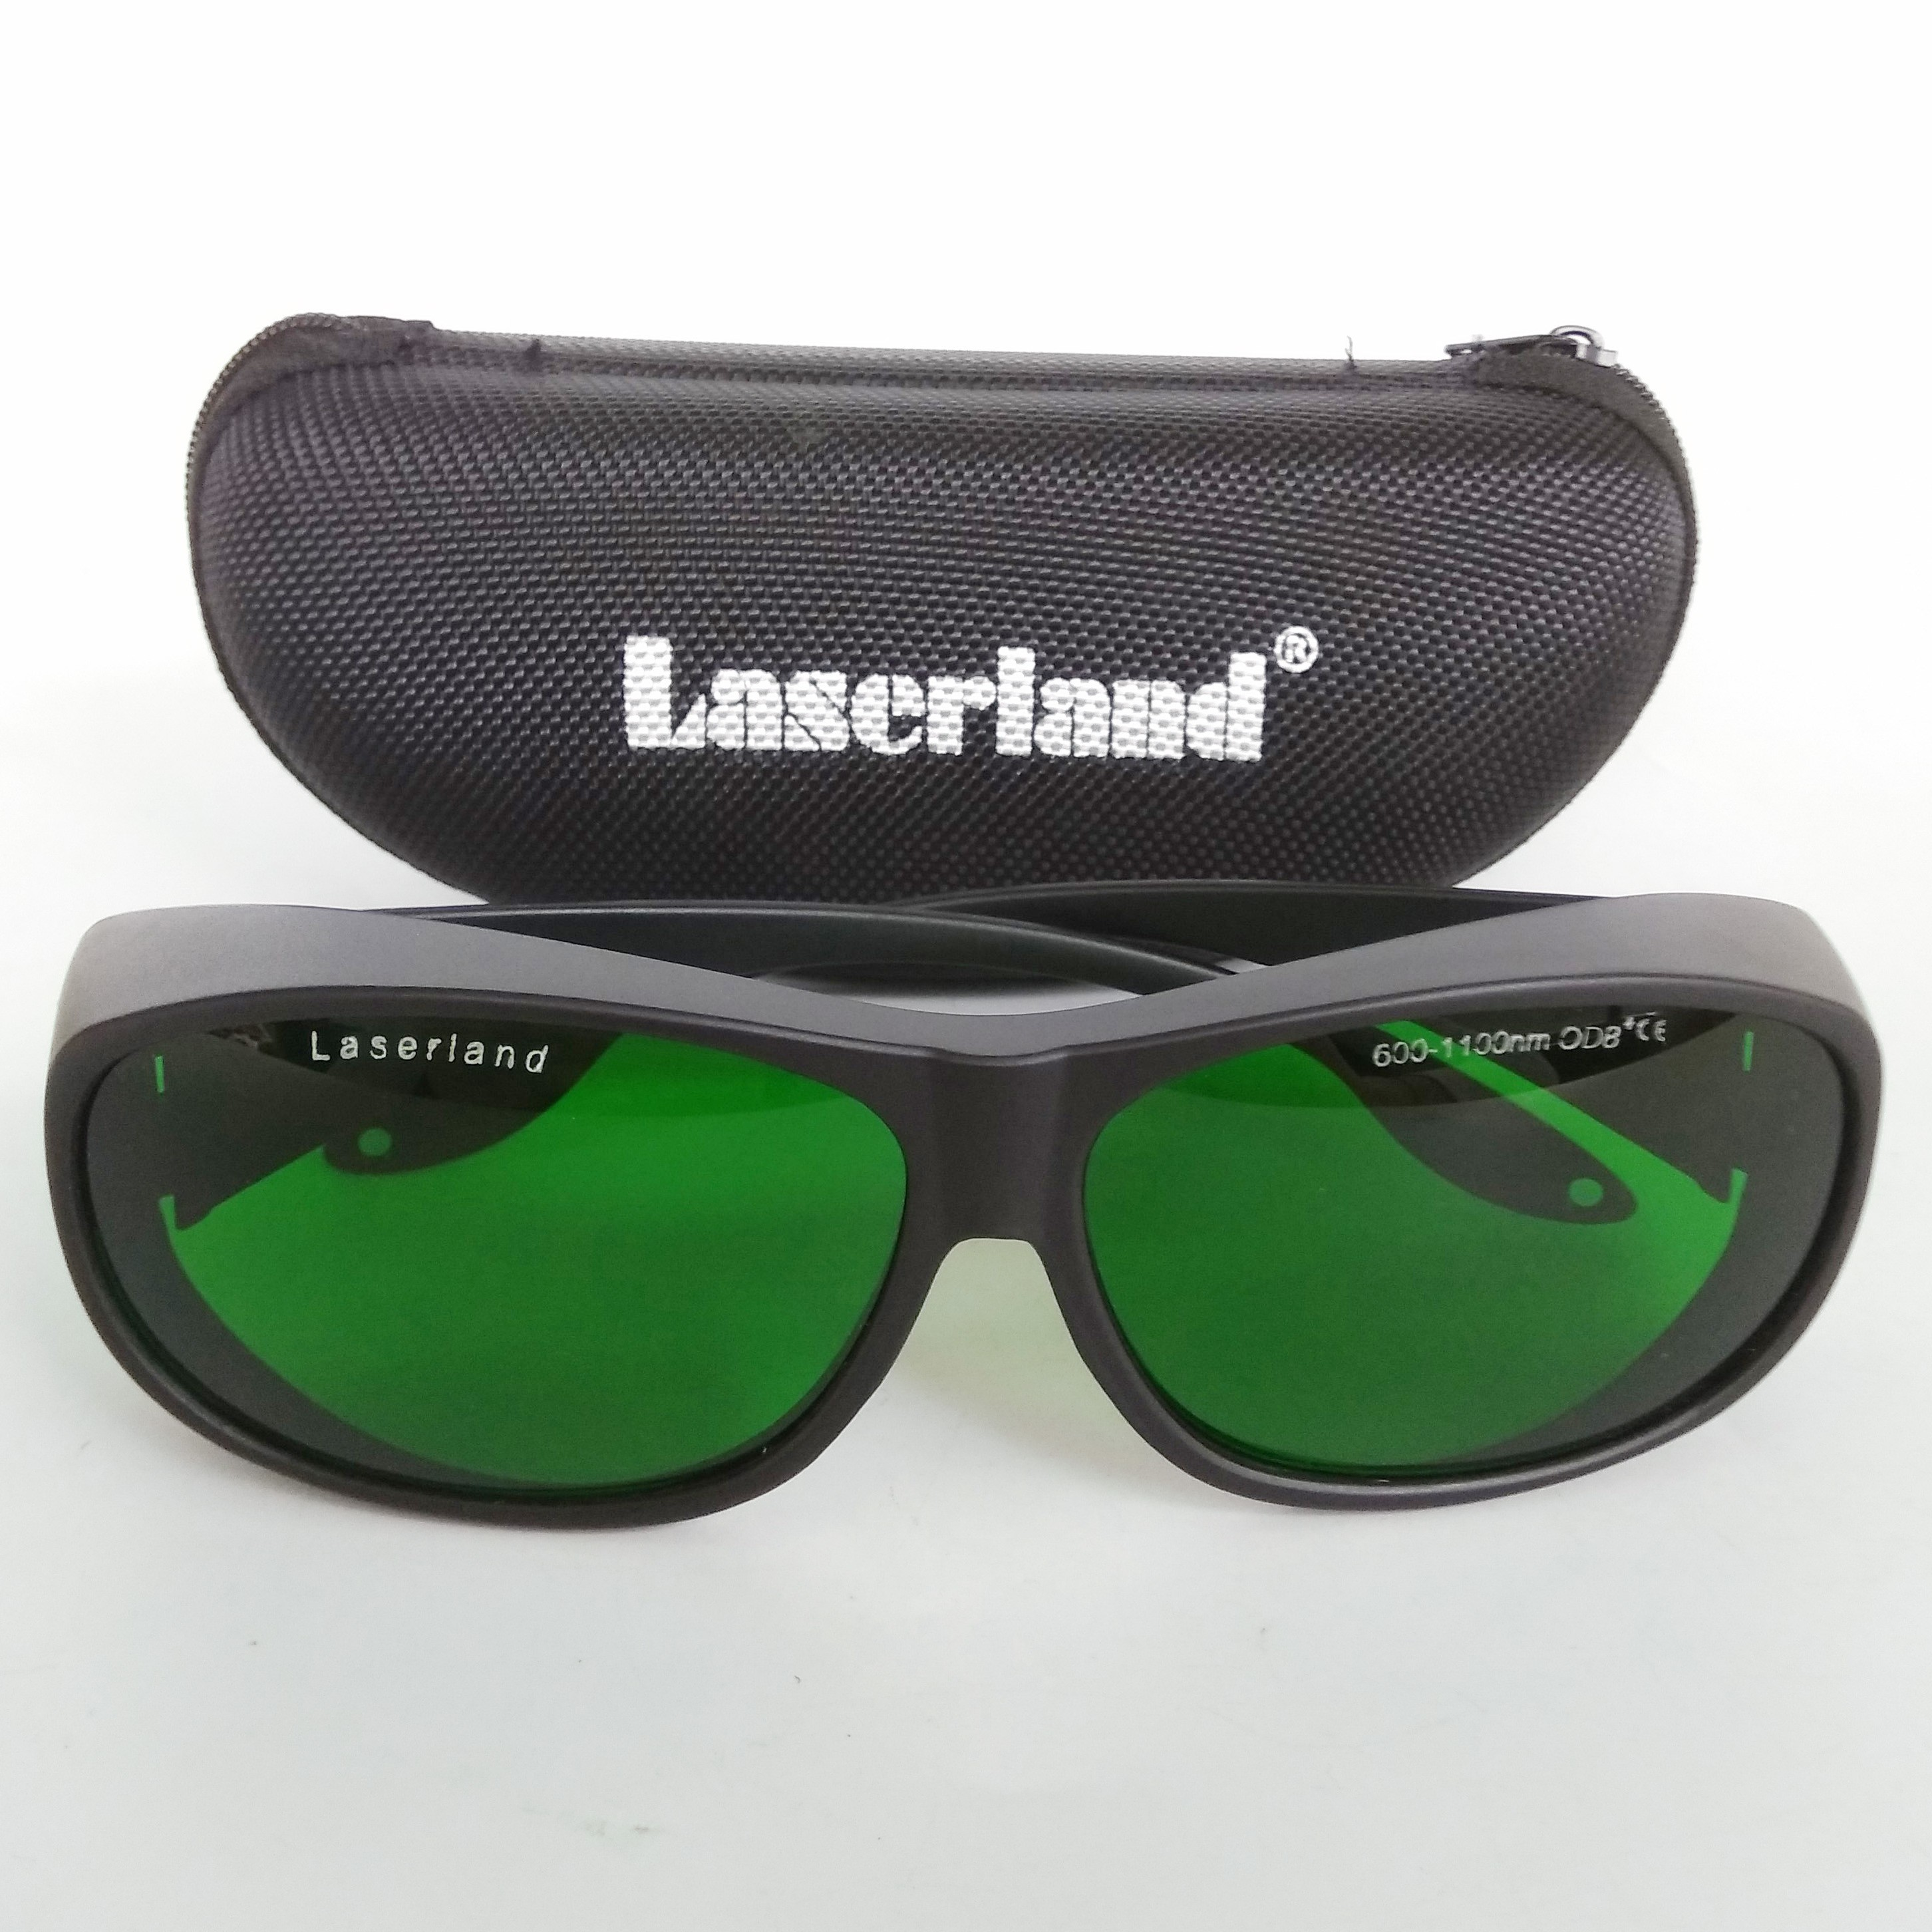 T-3r 660nm 808nm 980nm 1064nm OD8+ Laser Protective Goggles